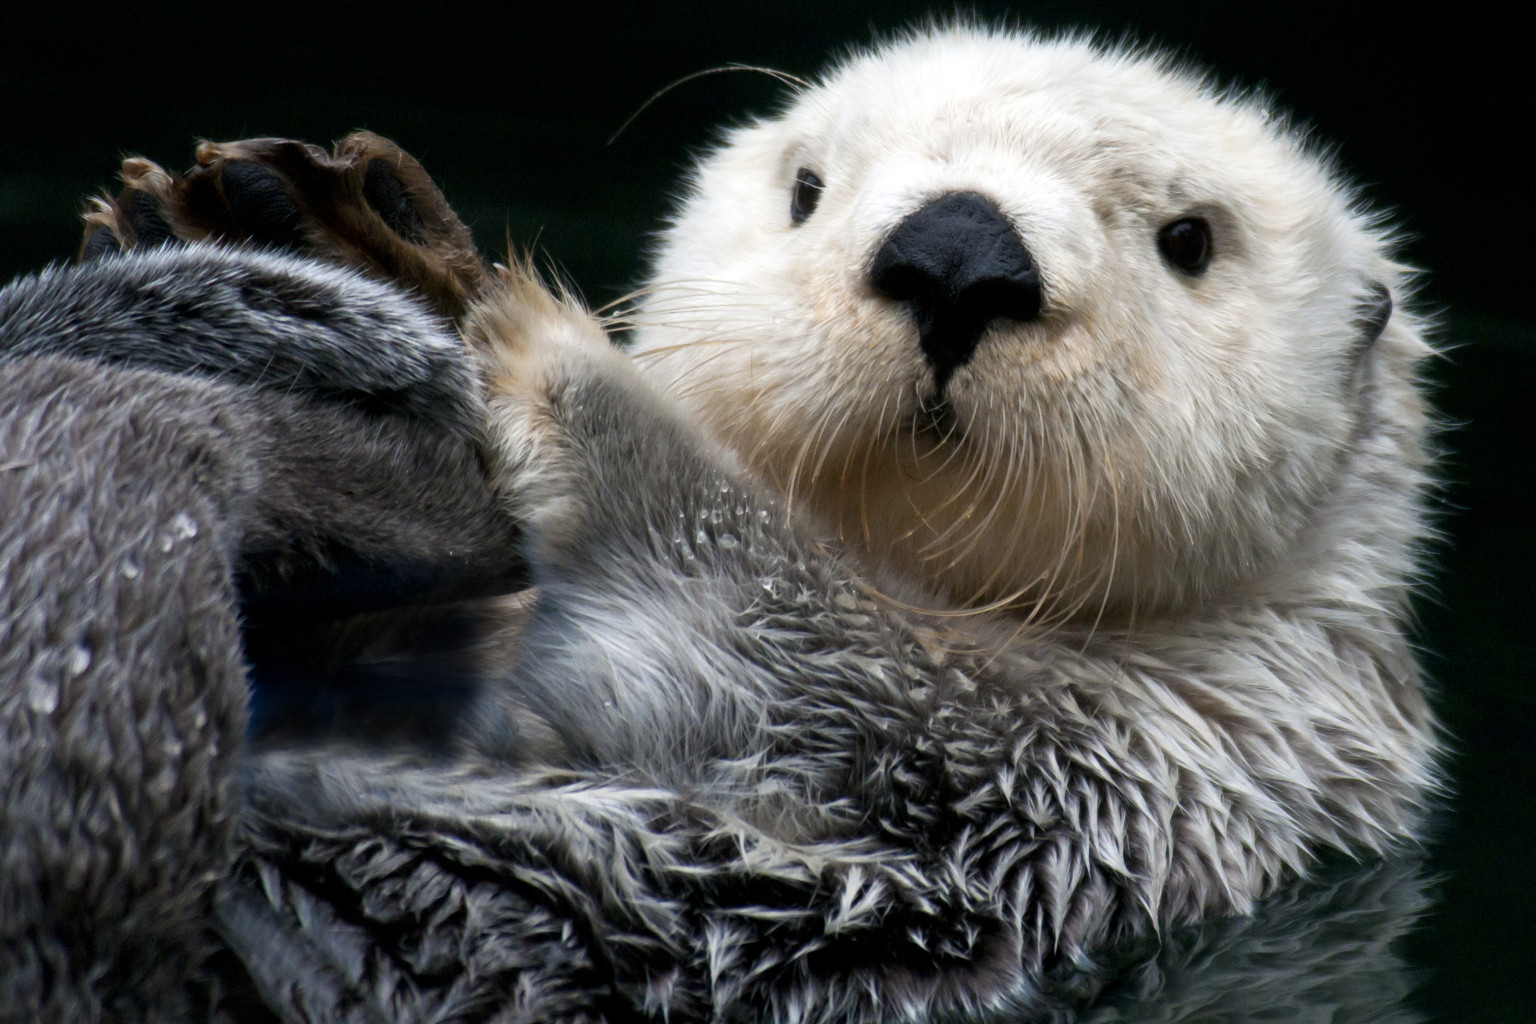 an analysis of the sea otters effects on the ecosystem In marine ecosystems at equilibrium, however, sea otters are often  this  ecological cascade effect of secondary extinctions resulting  based on the  information in the passage, what is the most likely meaning of holdfast.